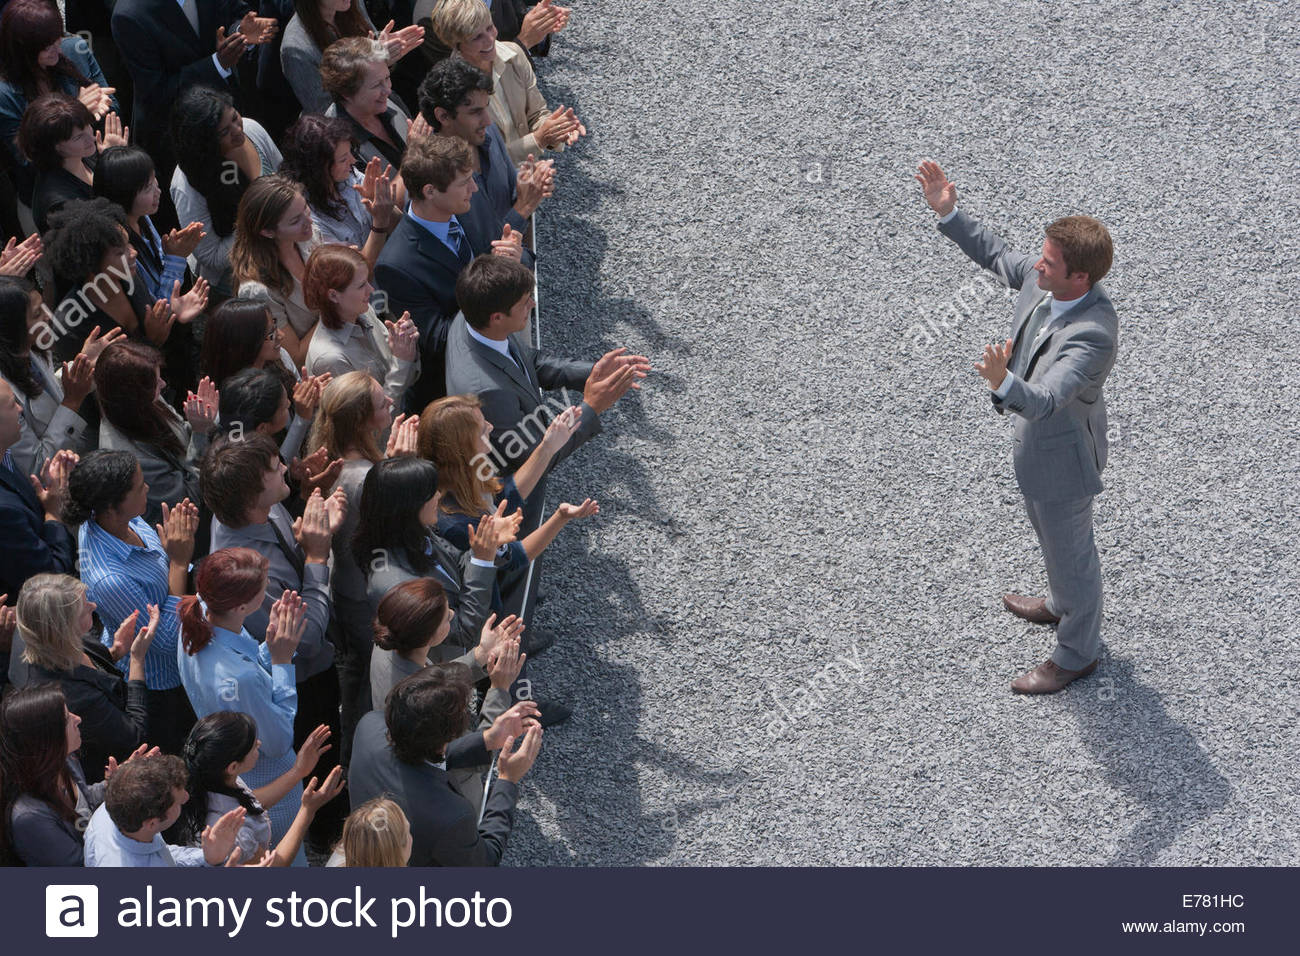 Businessman addressing clapping crowd - Stock Image